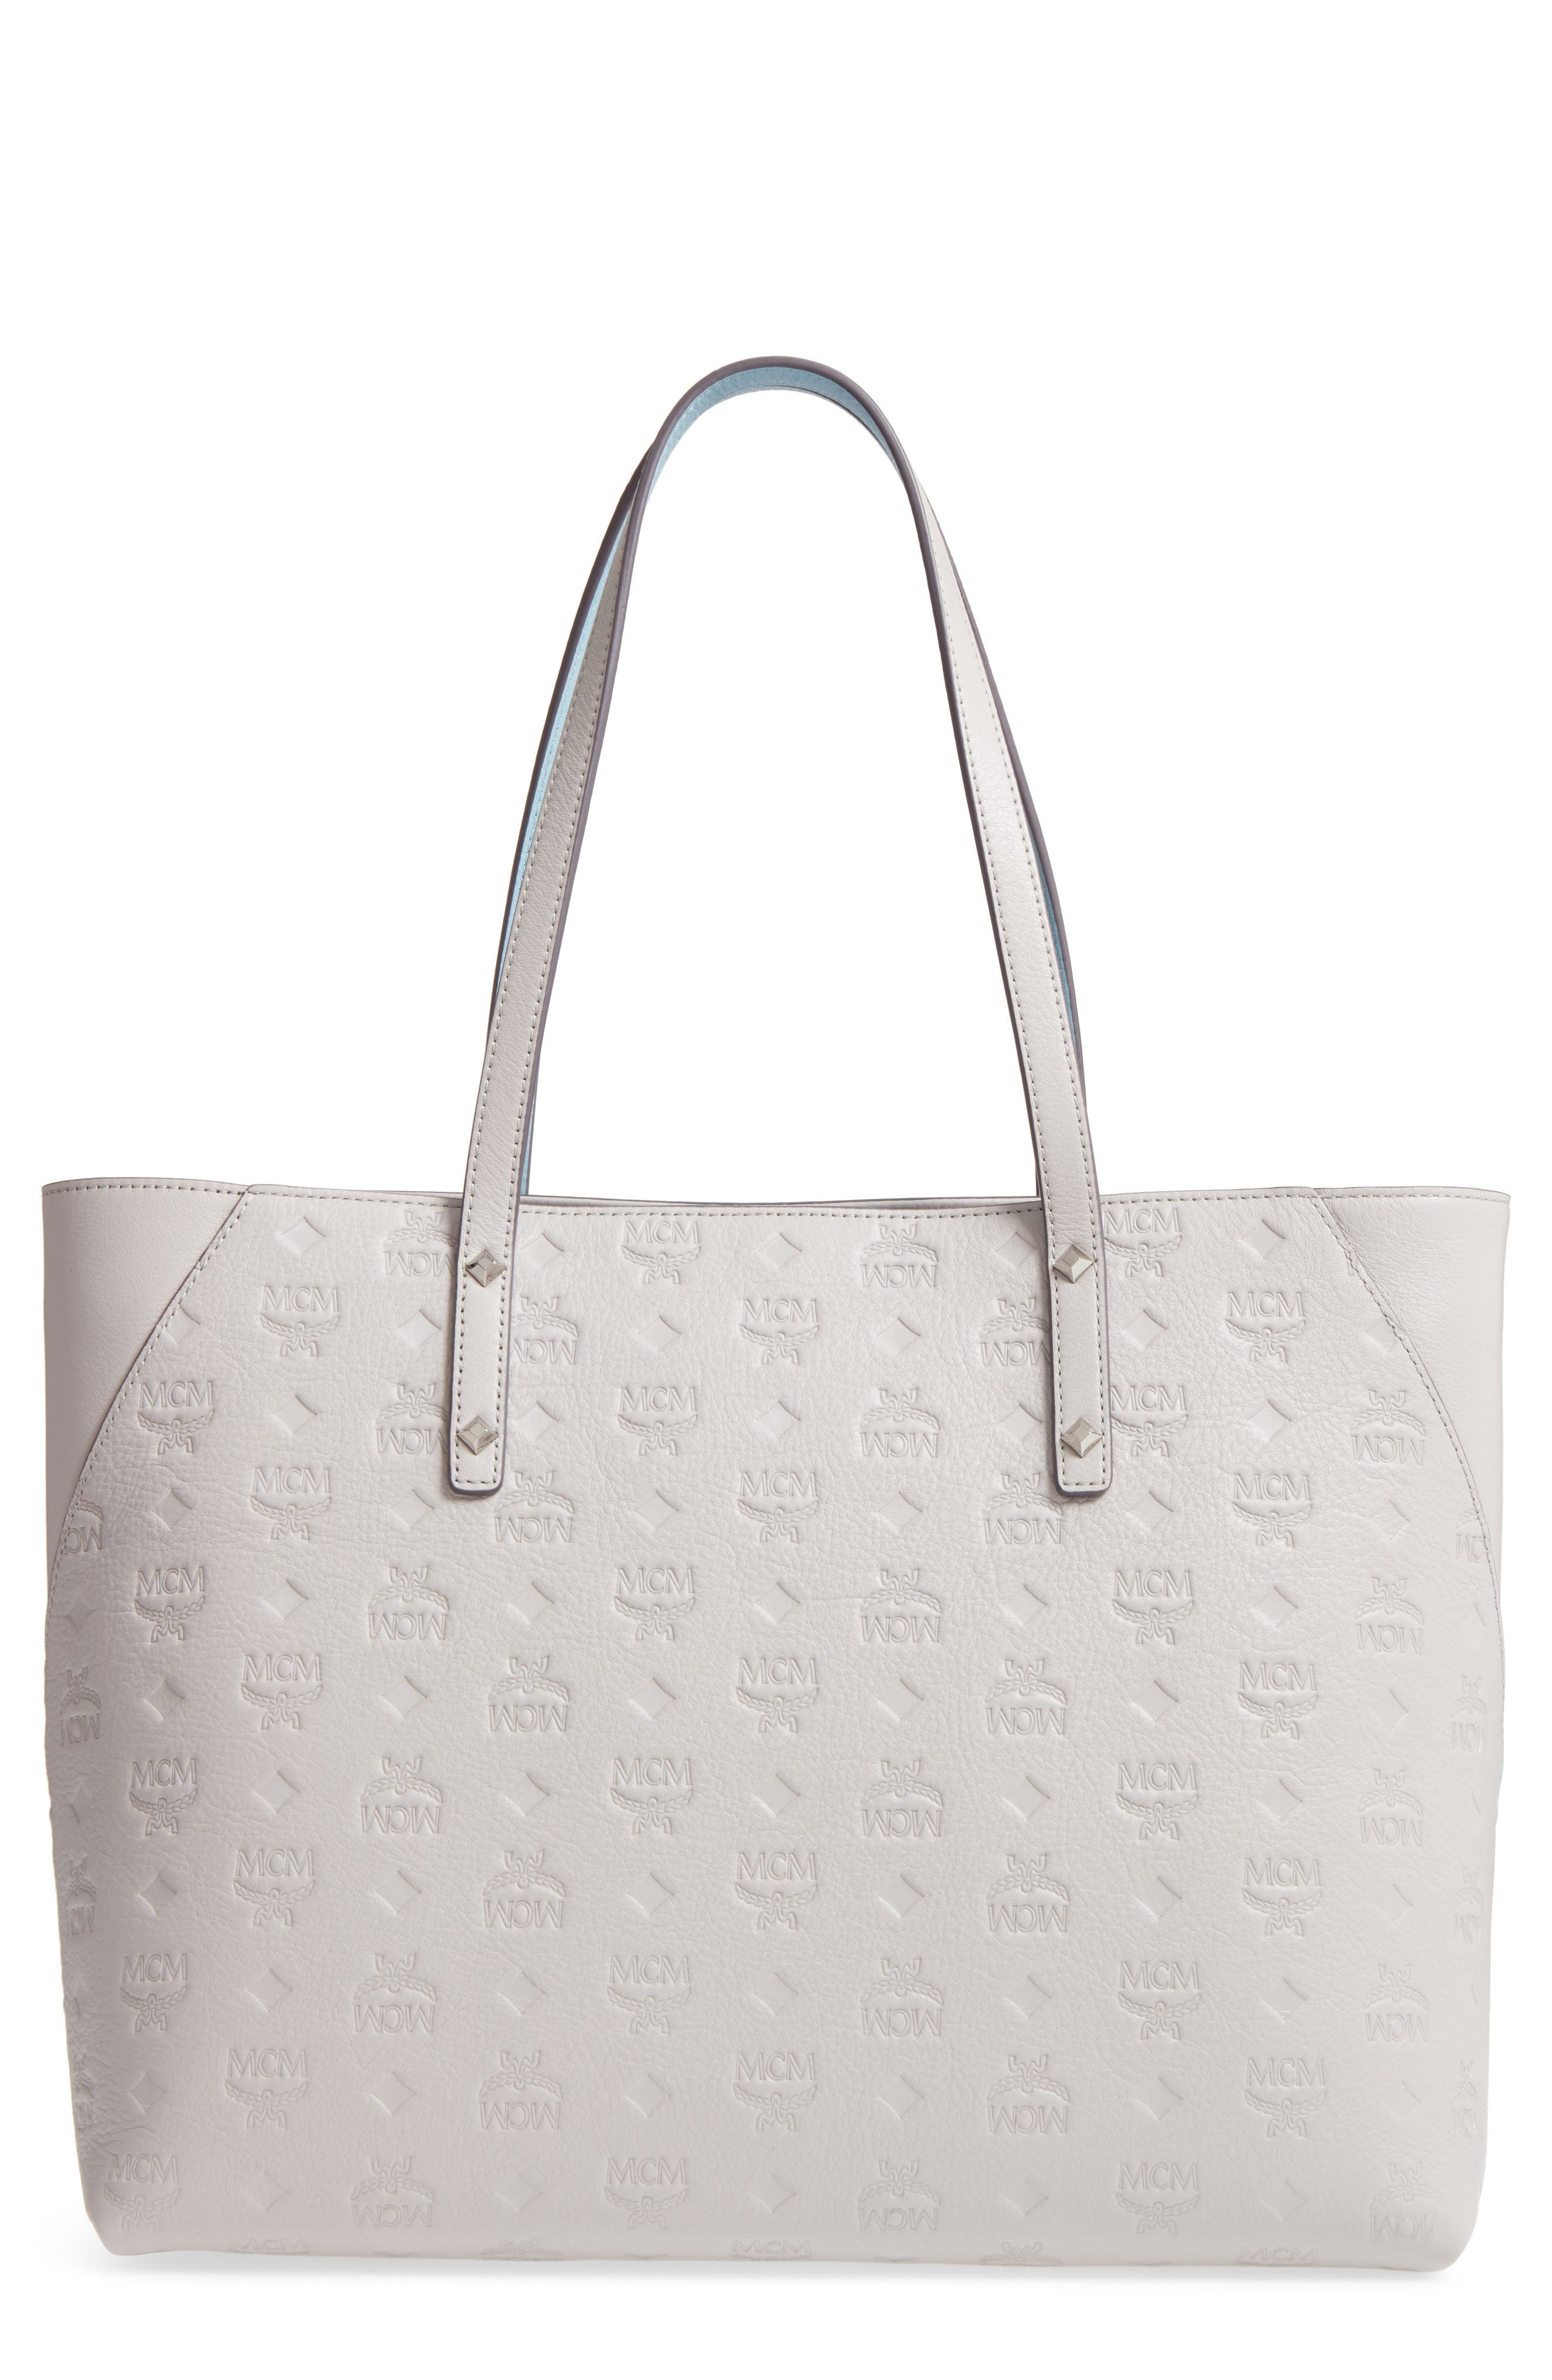 Mcm  KLARA MEDIUM MONOGRAMMED LEATHER SHOPPER - GREY